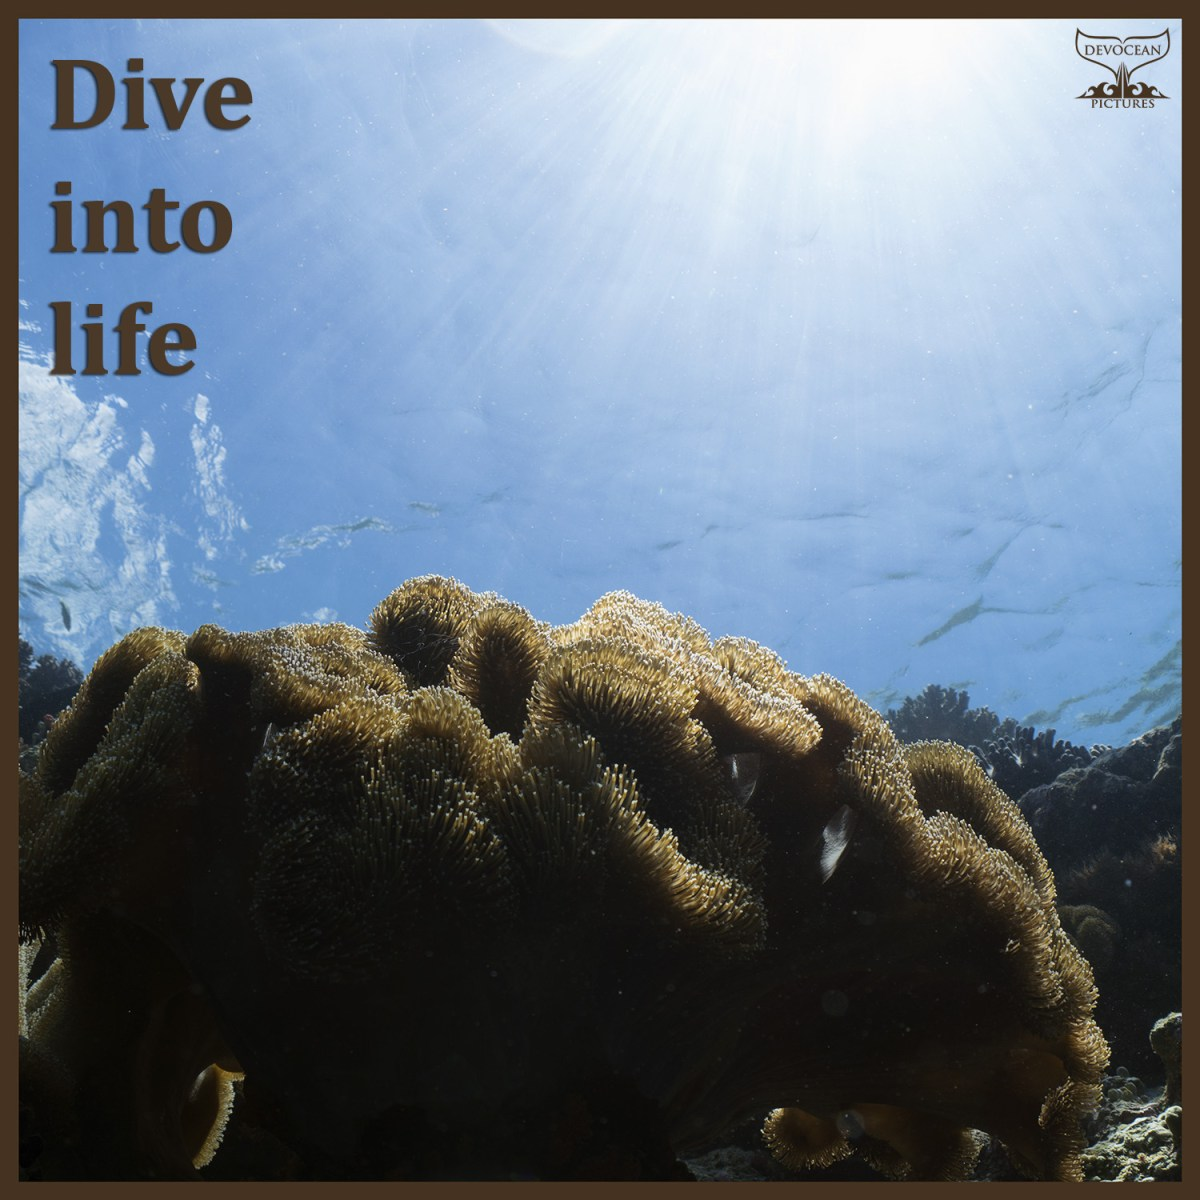 Postcard with alternative text: dive into life. Sunburst on hsallow reef with leather coral, natural light only.